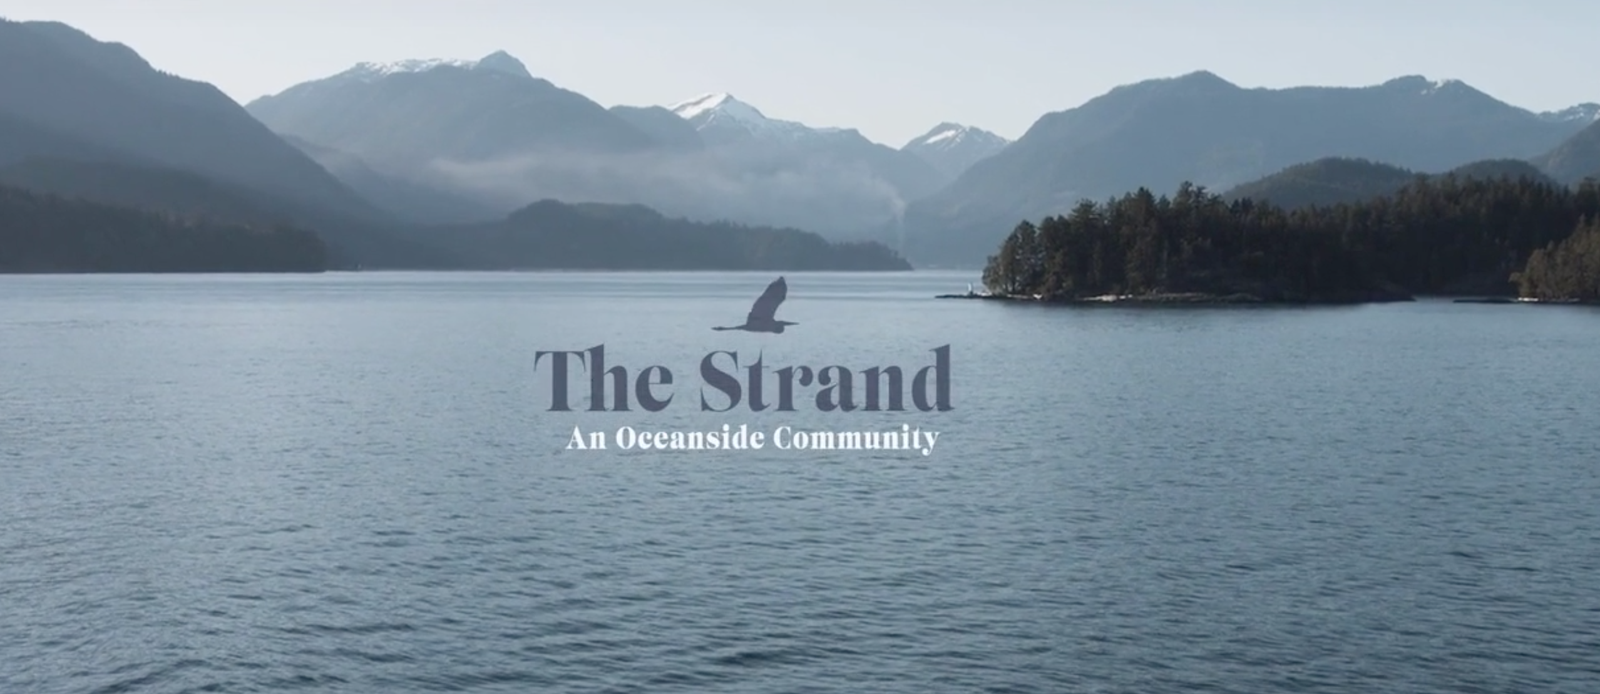 The Strand an Oceanside Community